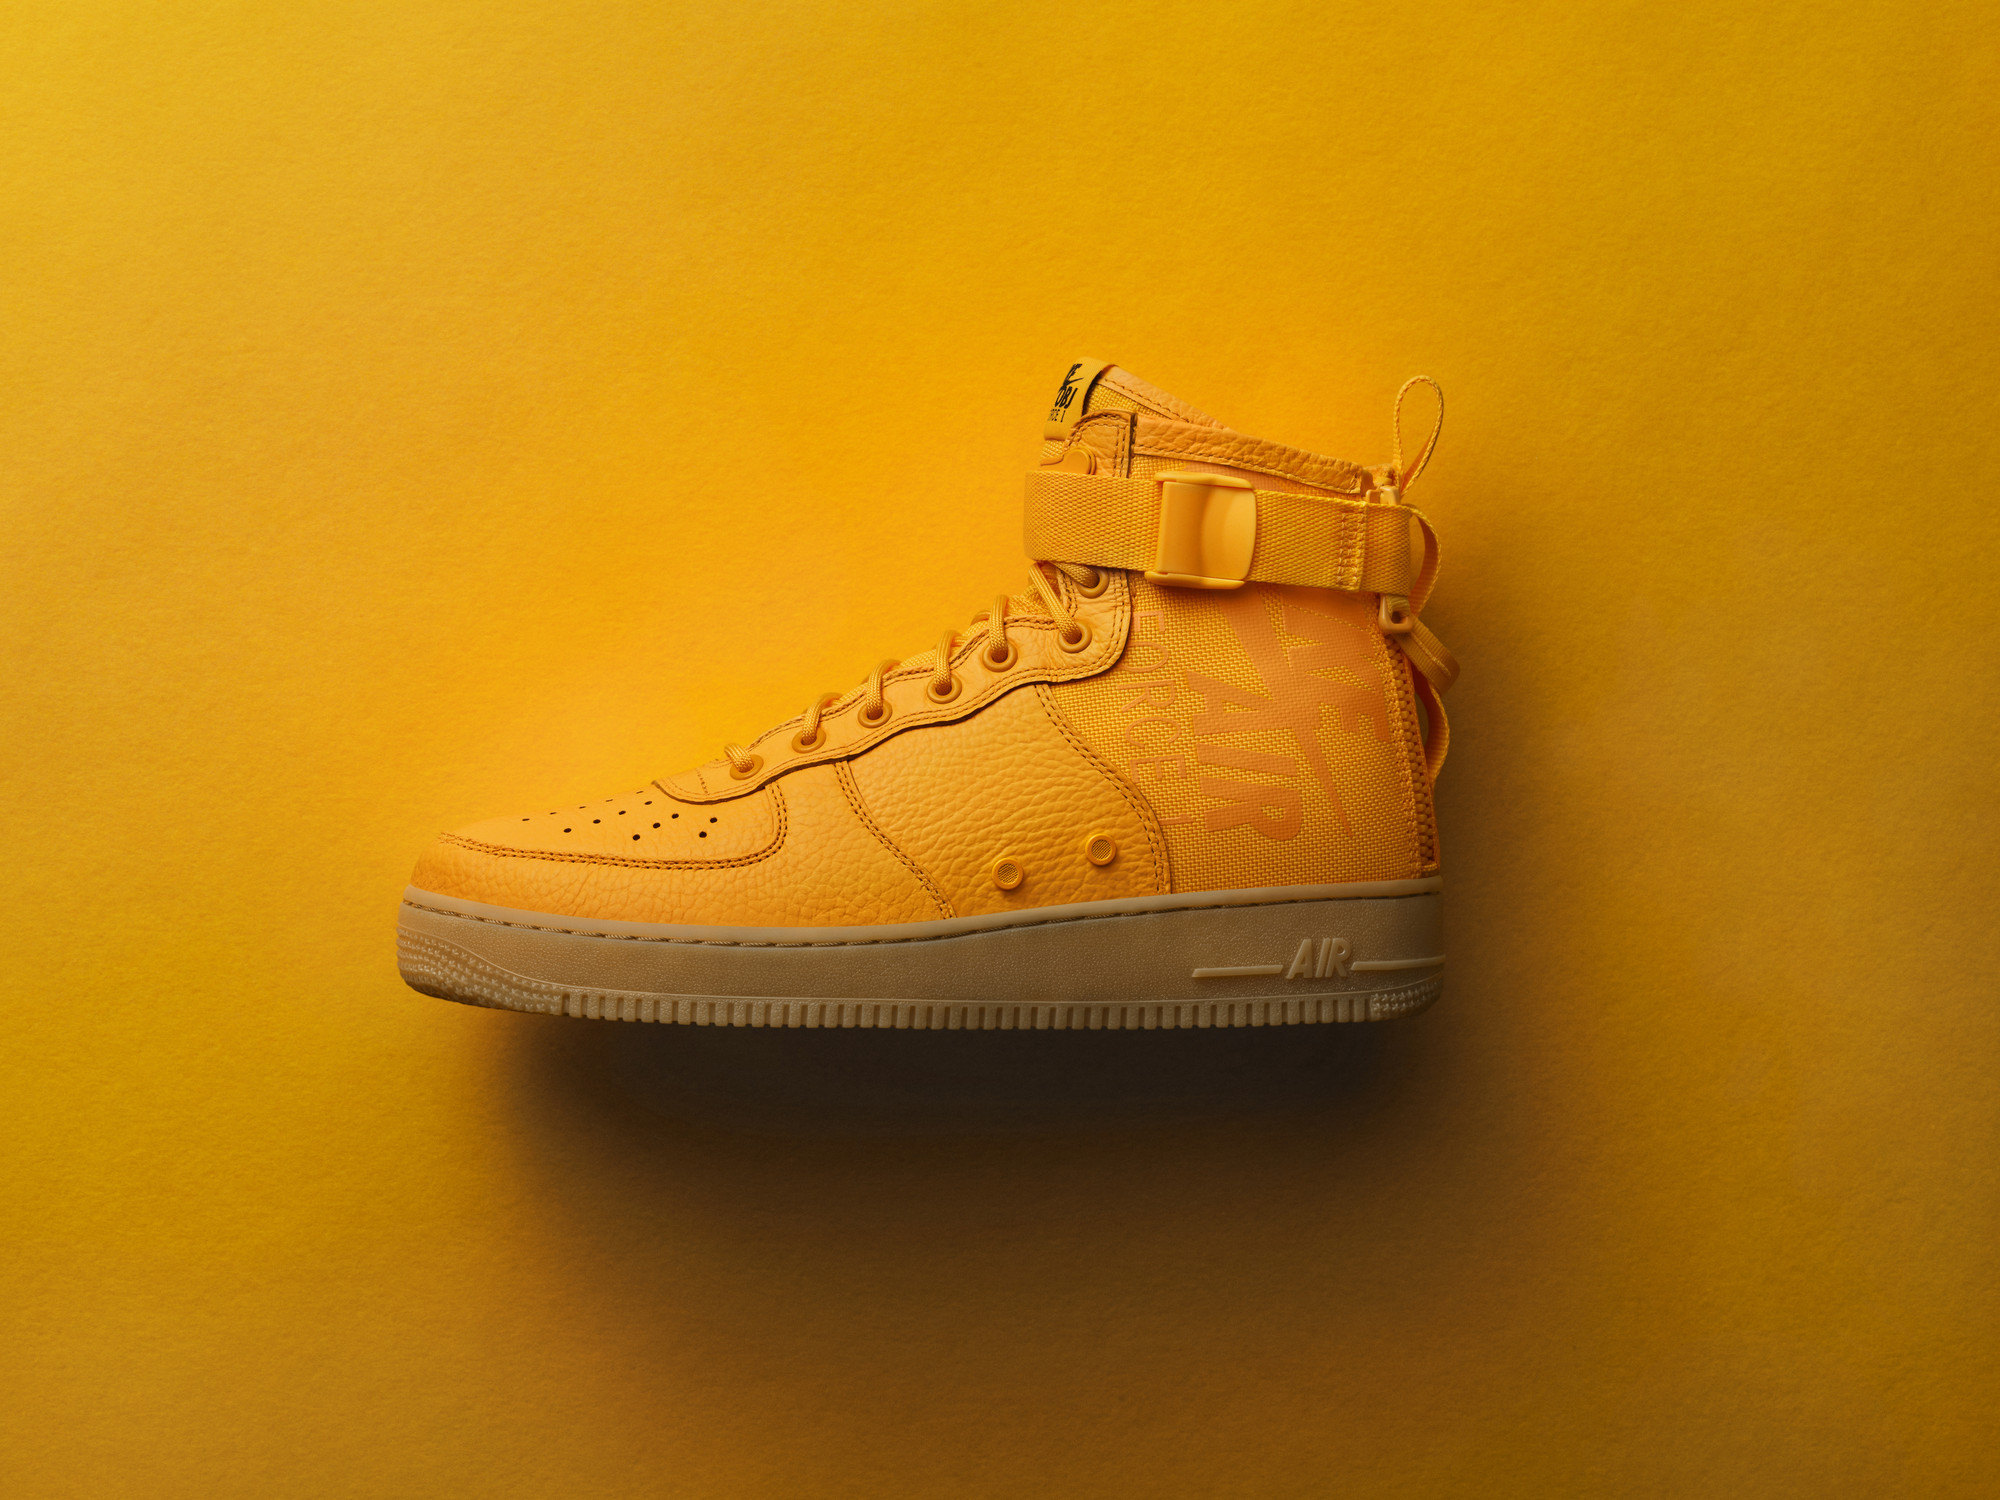 Odell Beckham Jr.\'s First Lifestyle Shoe is an SF AF1 Mid - WearTesters